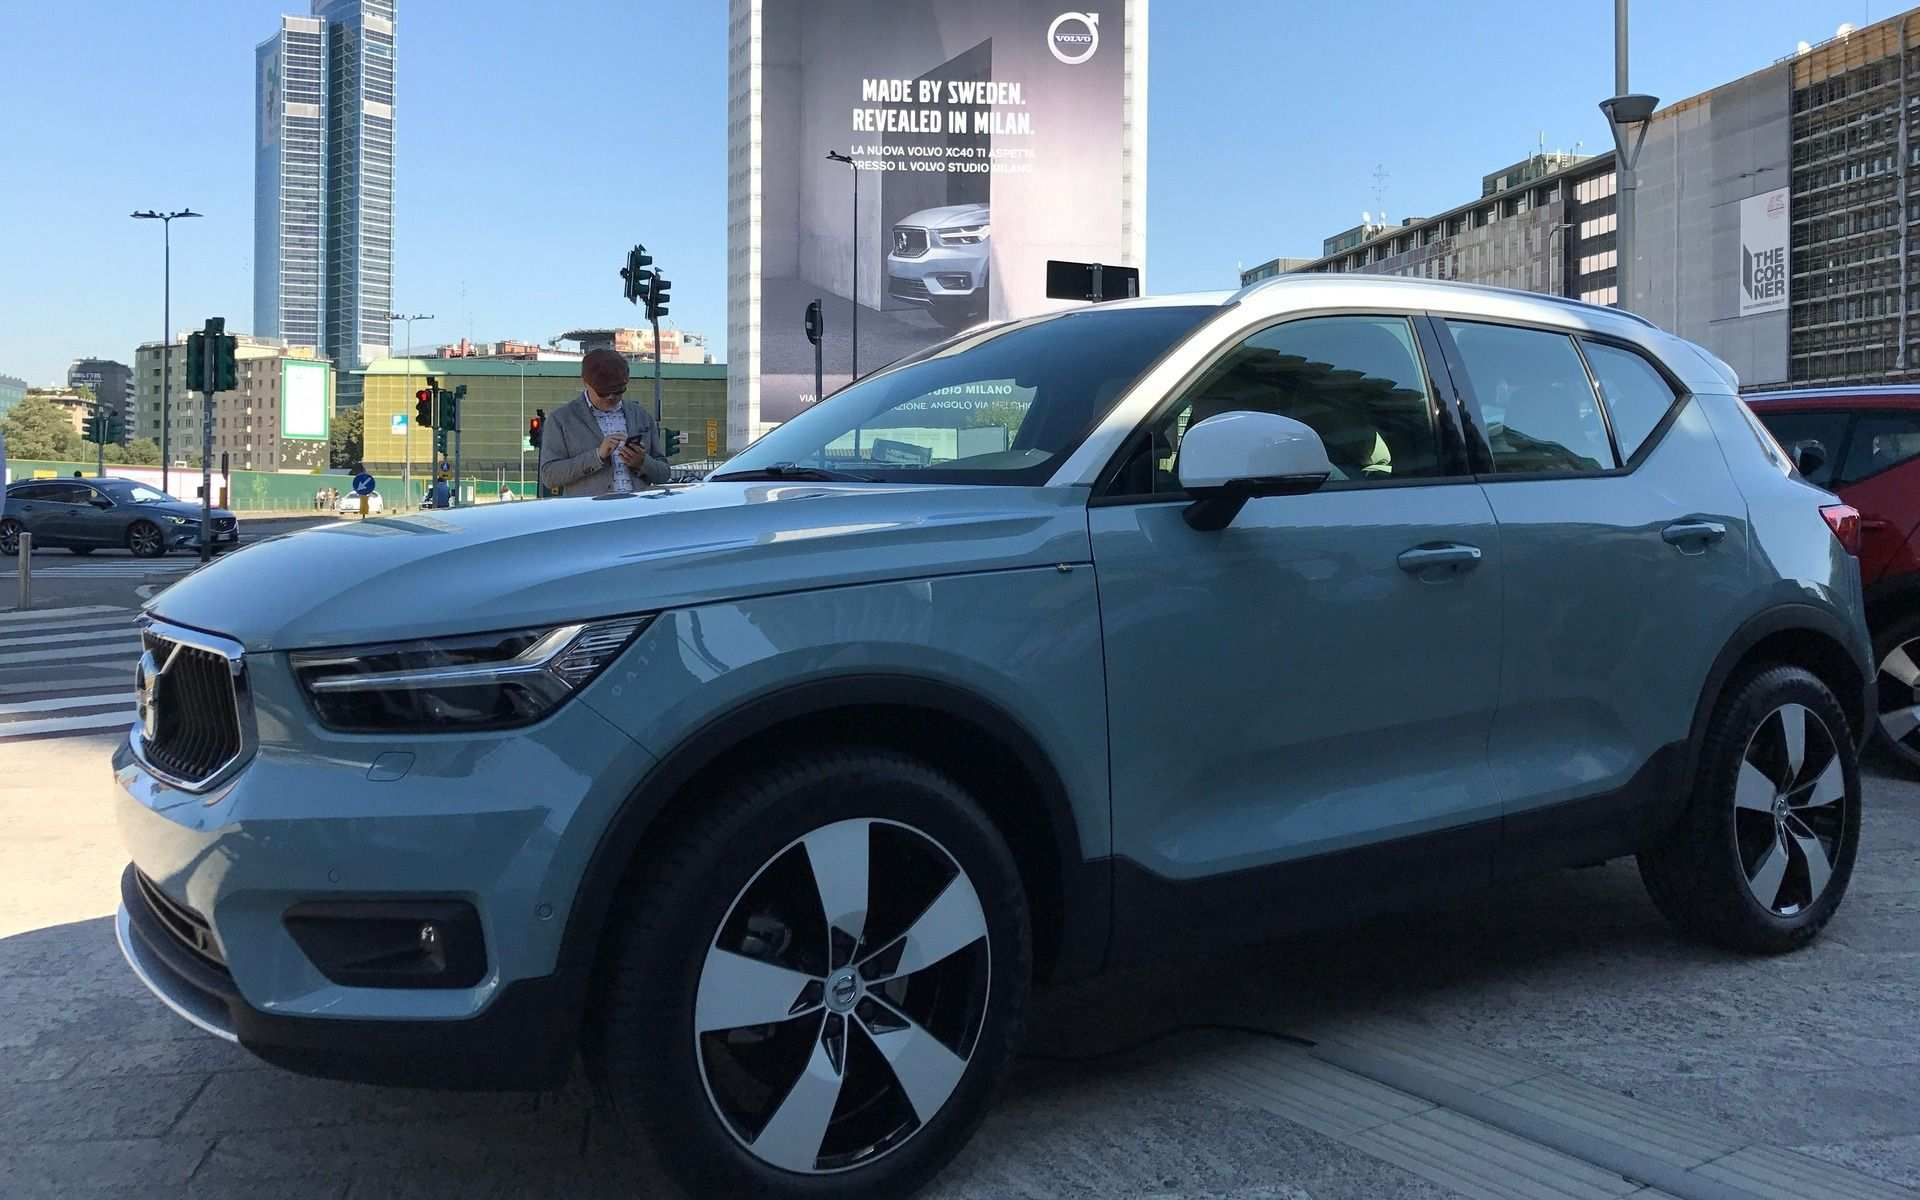 63 Best Review 2019 Volvo Xc40 Owners Manual Images by 2019 Volvo Xc40 Owners Manual